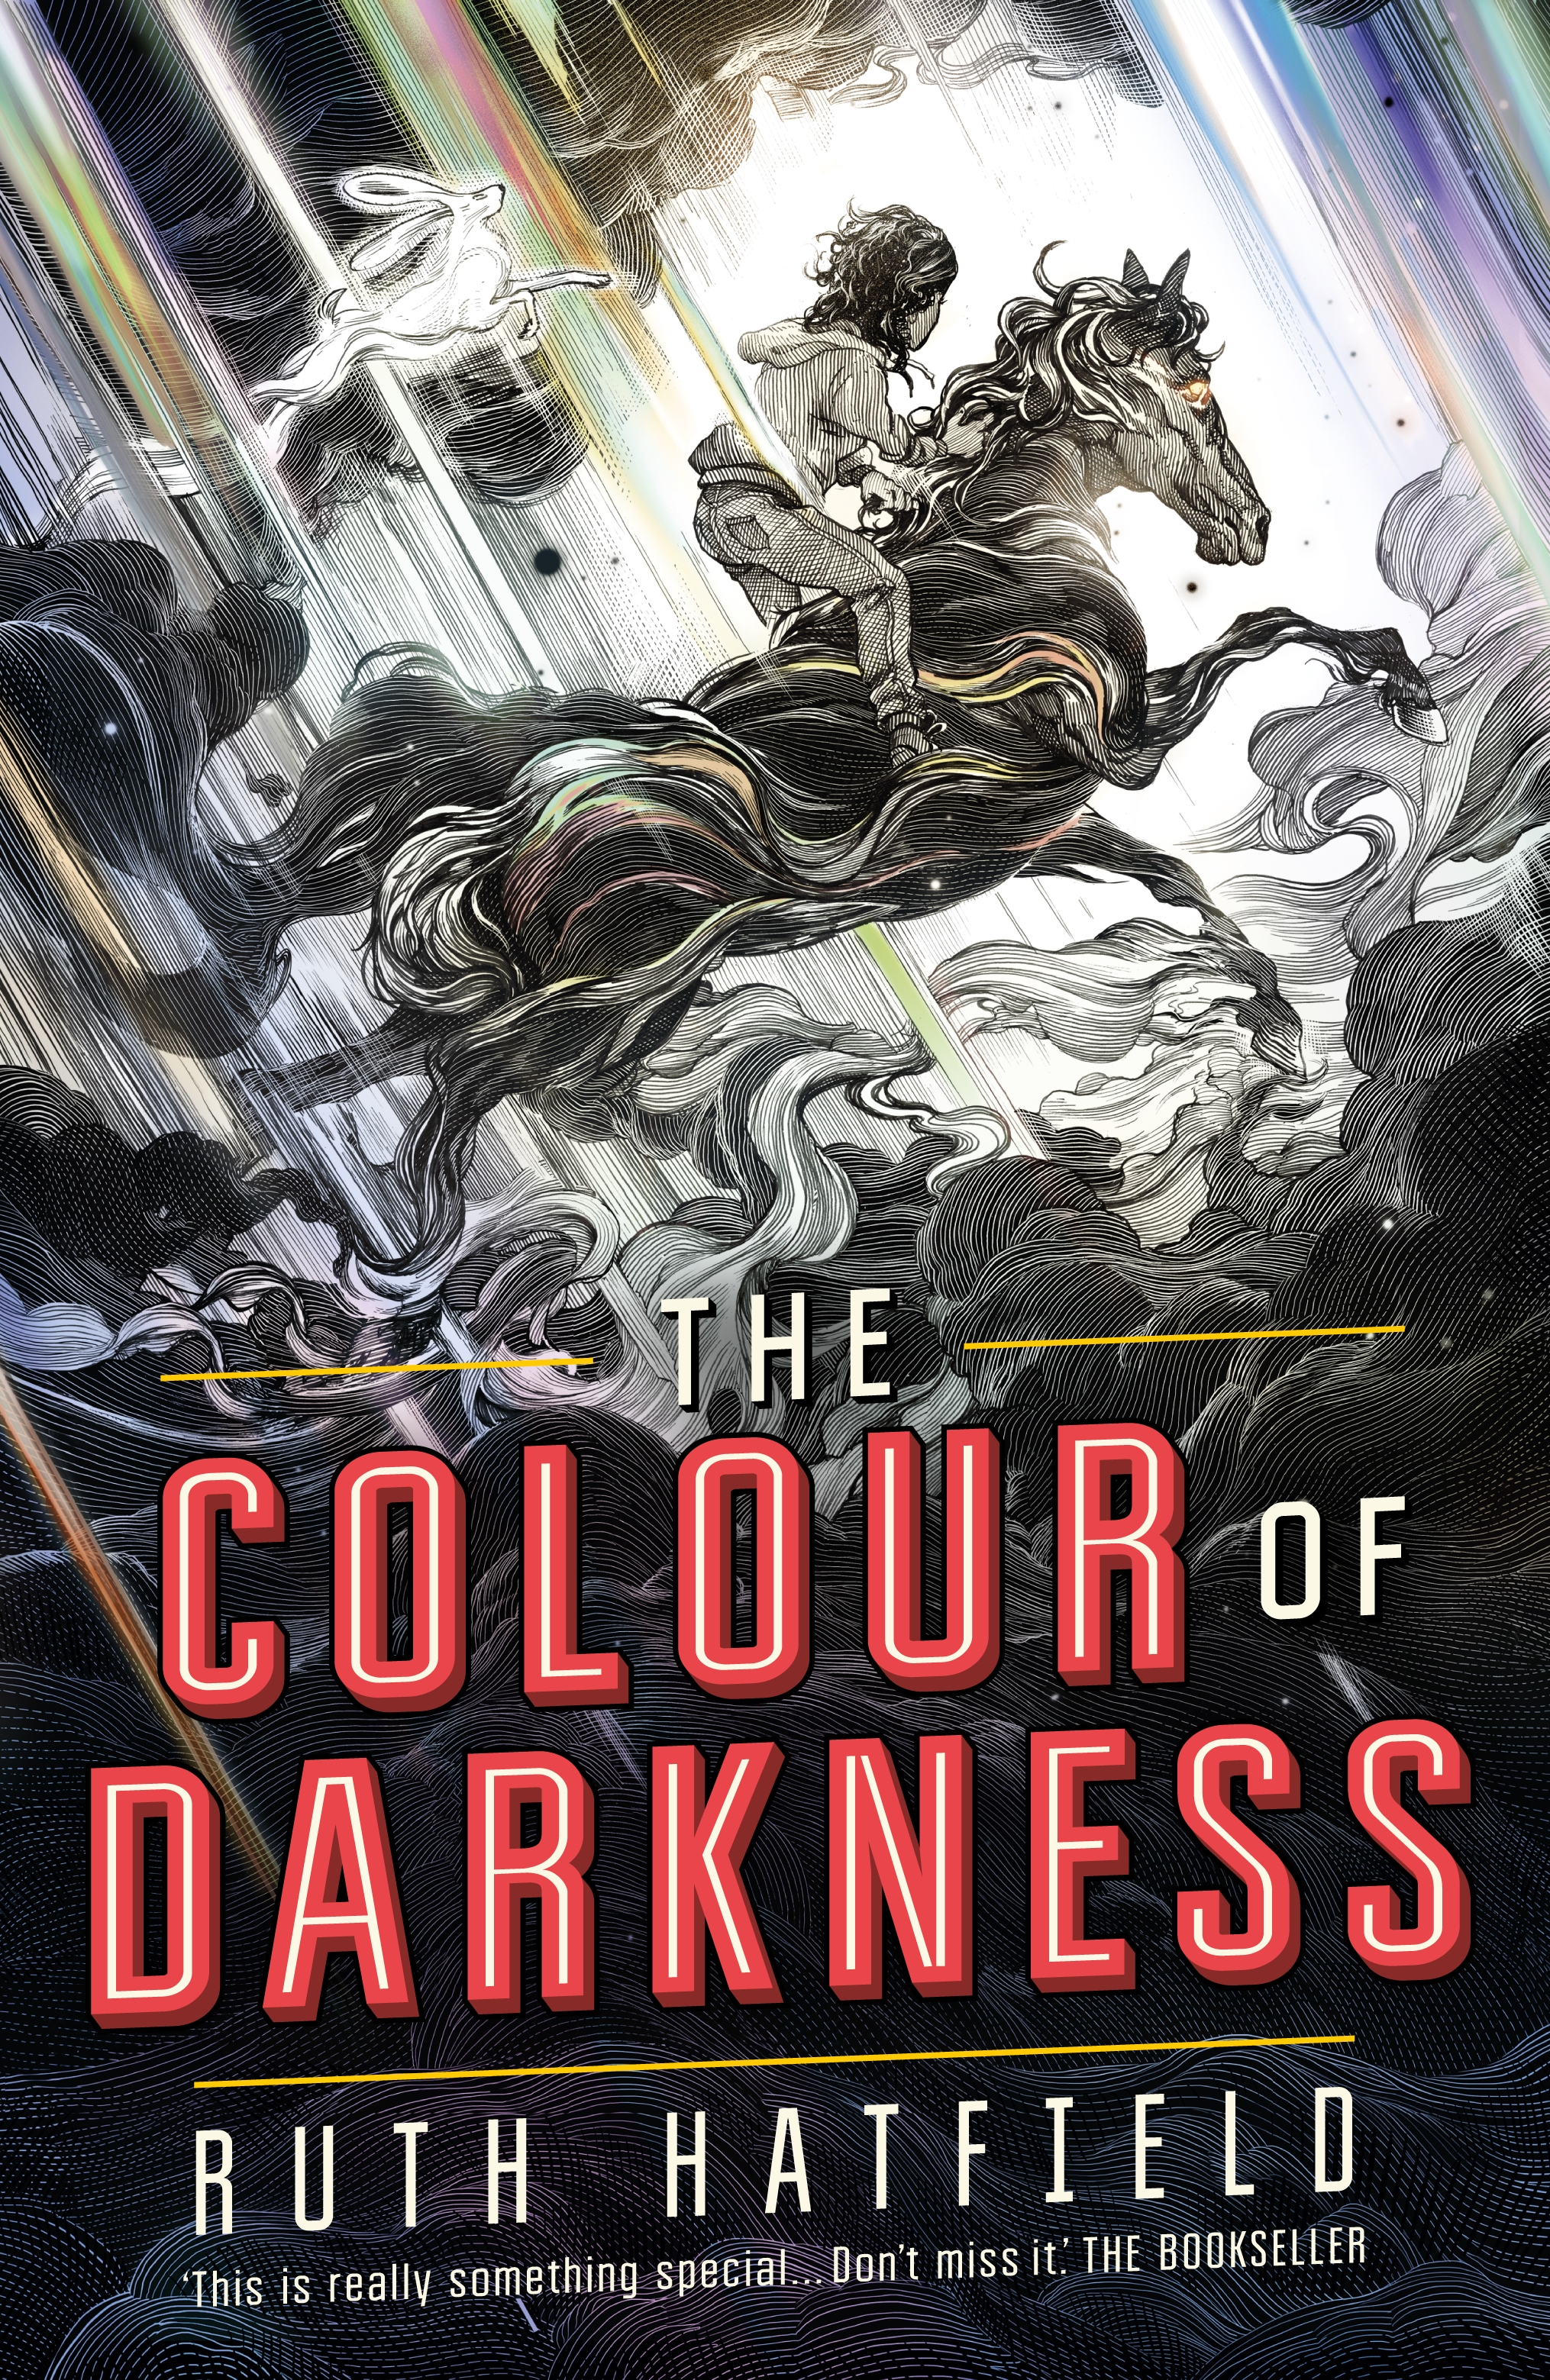 The Colour of Darkness by Ruth Hatfield